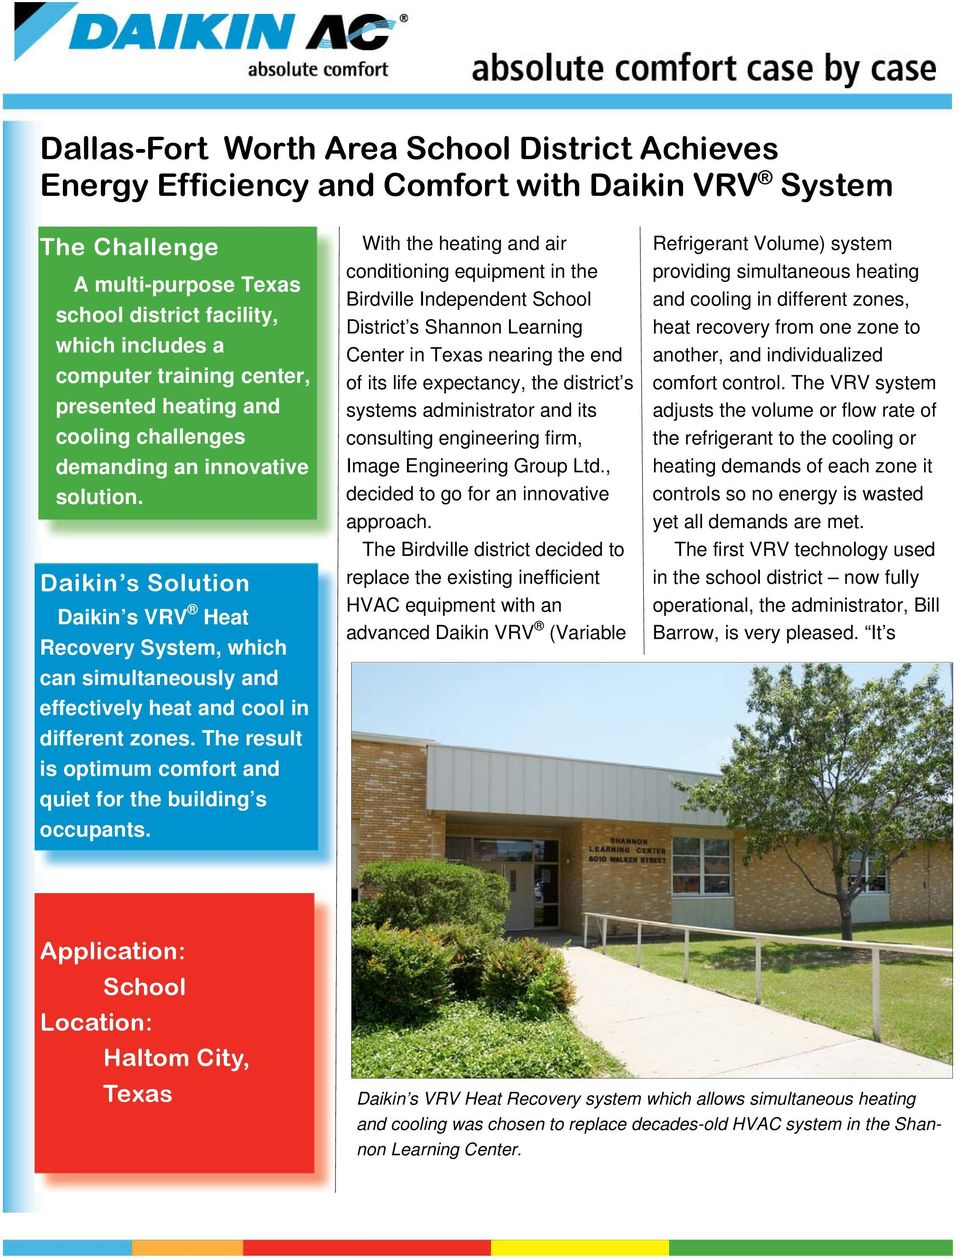 Daikin s Solution Daikin s VRV Heat Recovery System, which can simultaneously and effectively heat and cool in different zones. The result is optimum comfort and quiet for the building s occupants.